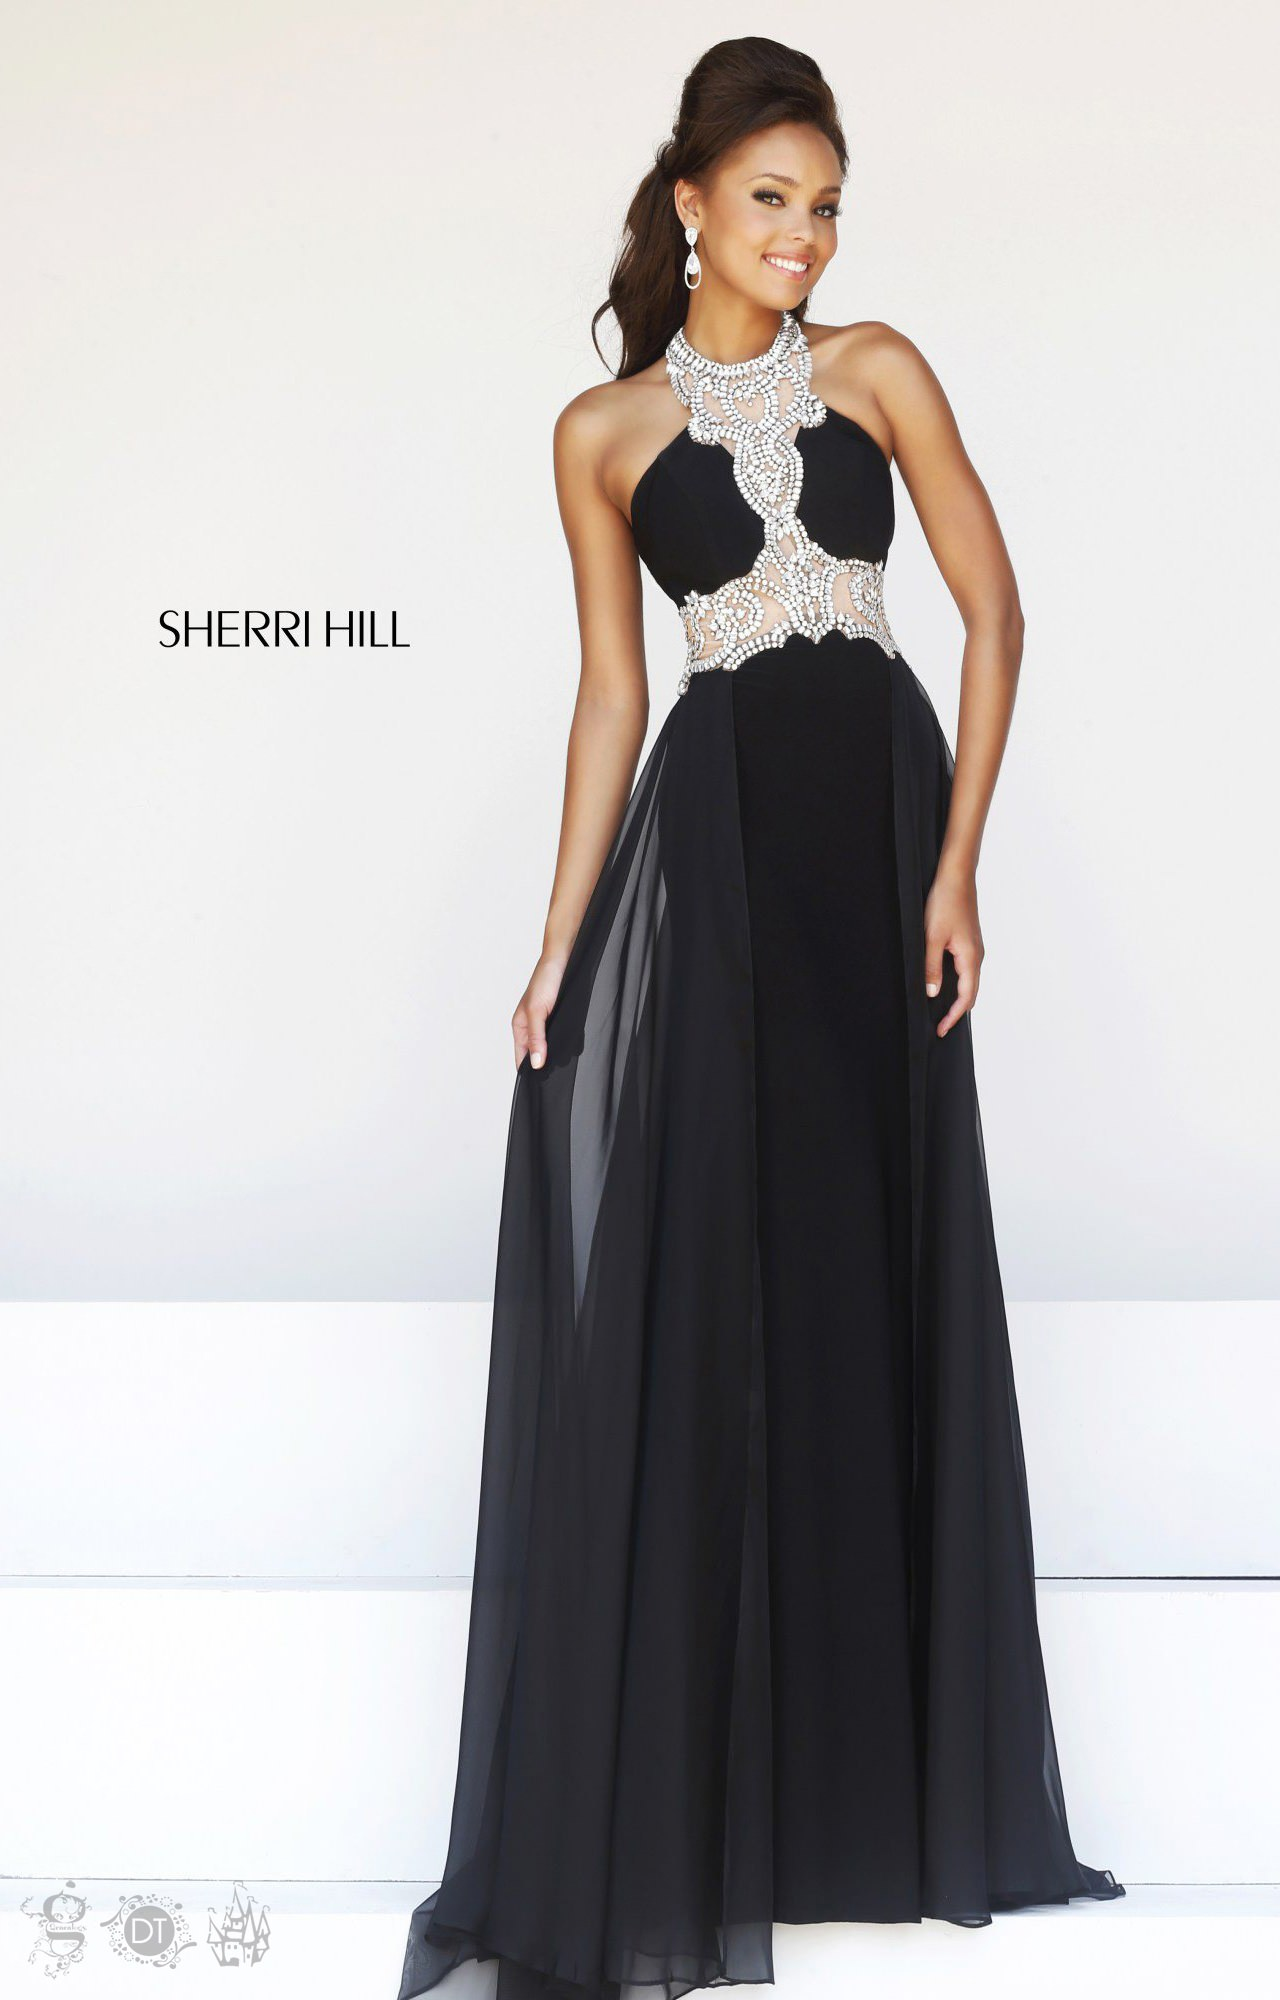 Best Hairstyle For Your Prom Dress : Sherri hill designer formal prom dress